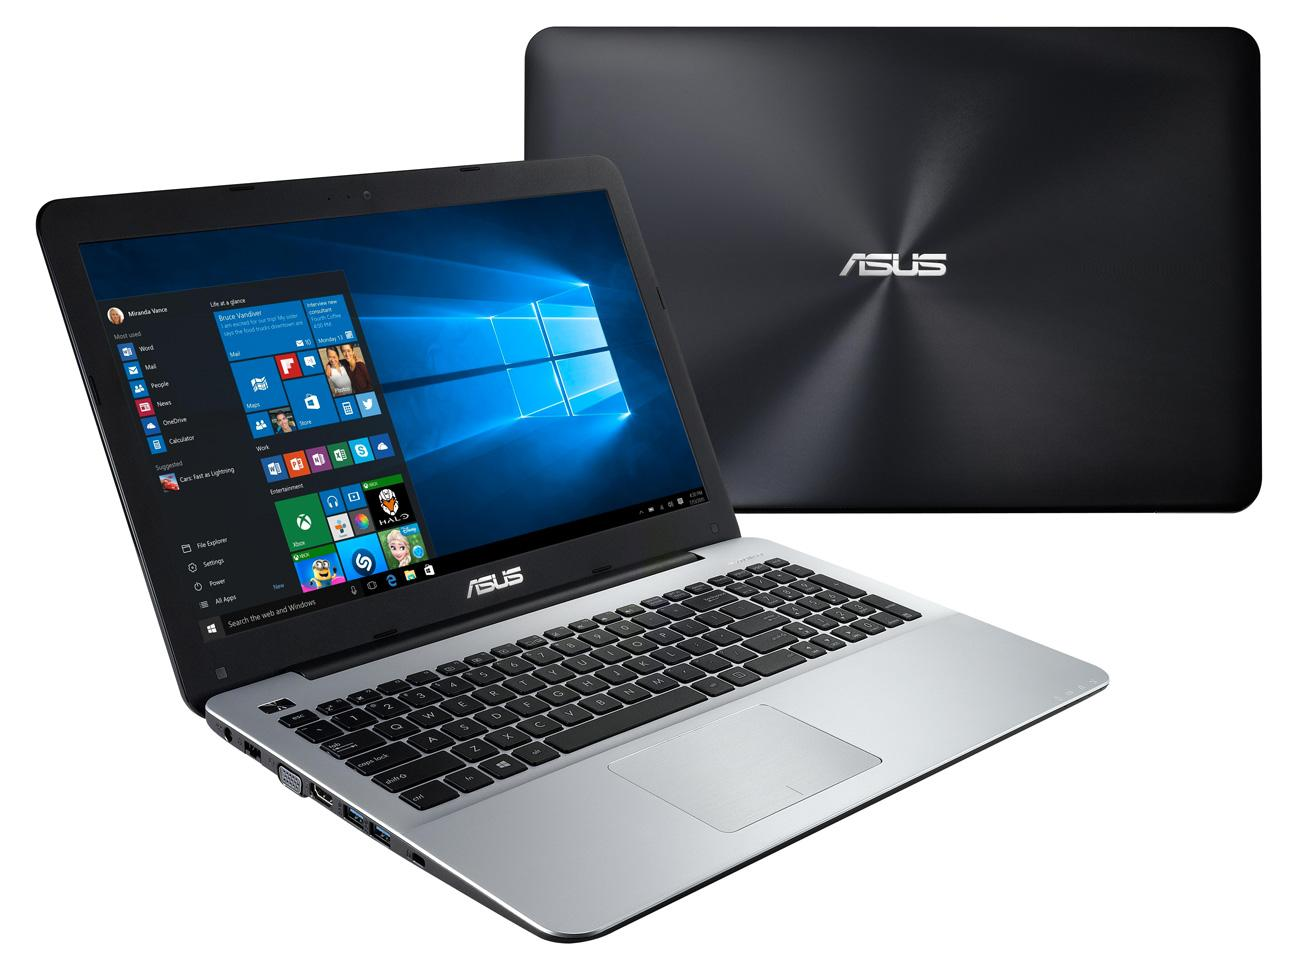 soldes 469 asus r511lj xo1482t pc portable 15 pouces bureautique ssd 920m laptopspirit. Black Bedroom Furniture Sets. Home Design Ideas